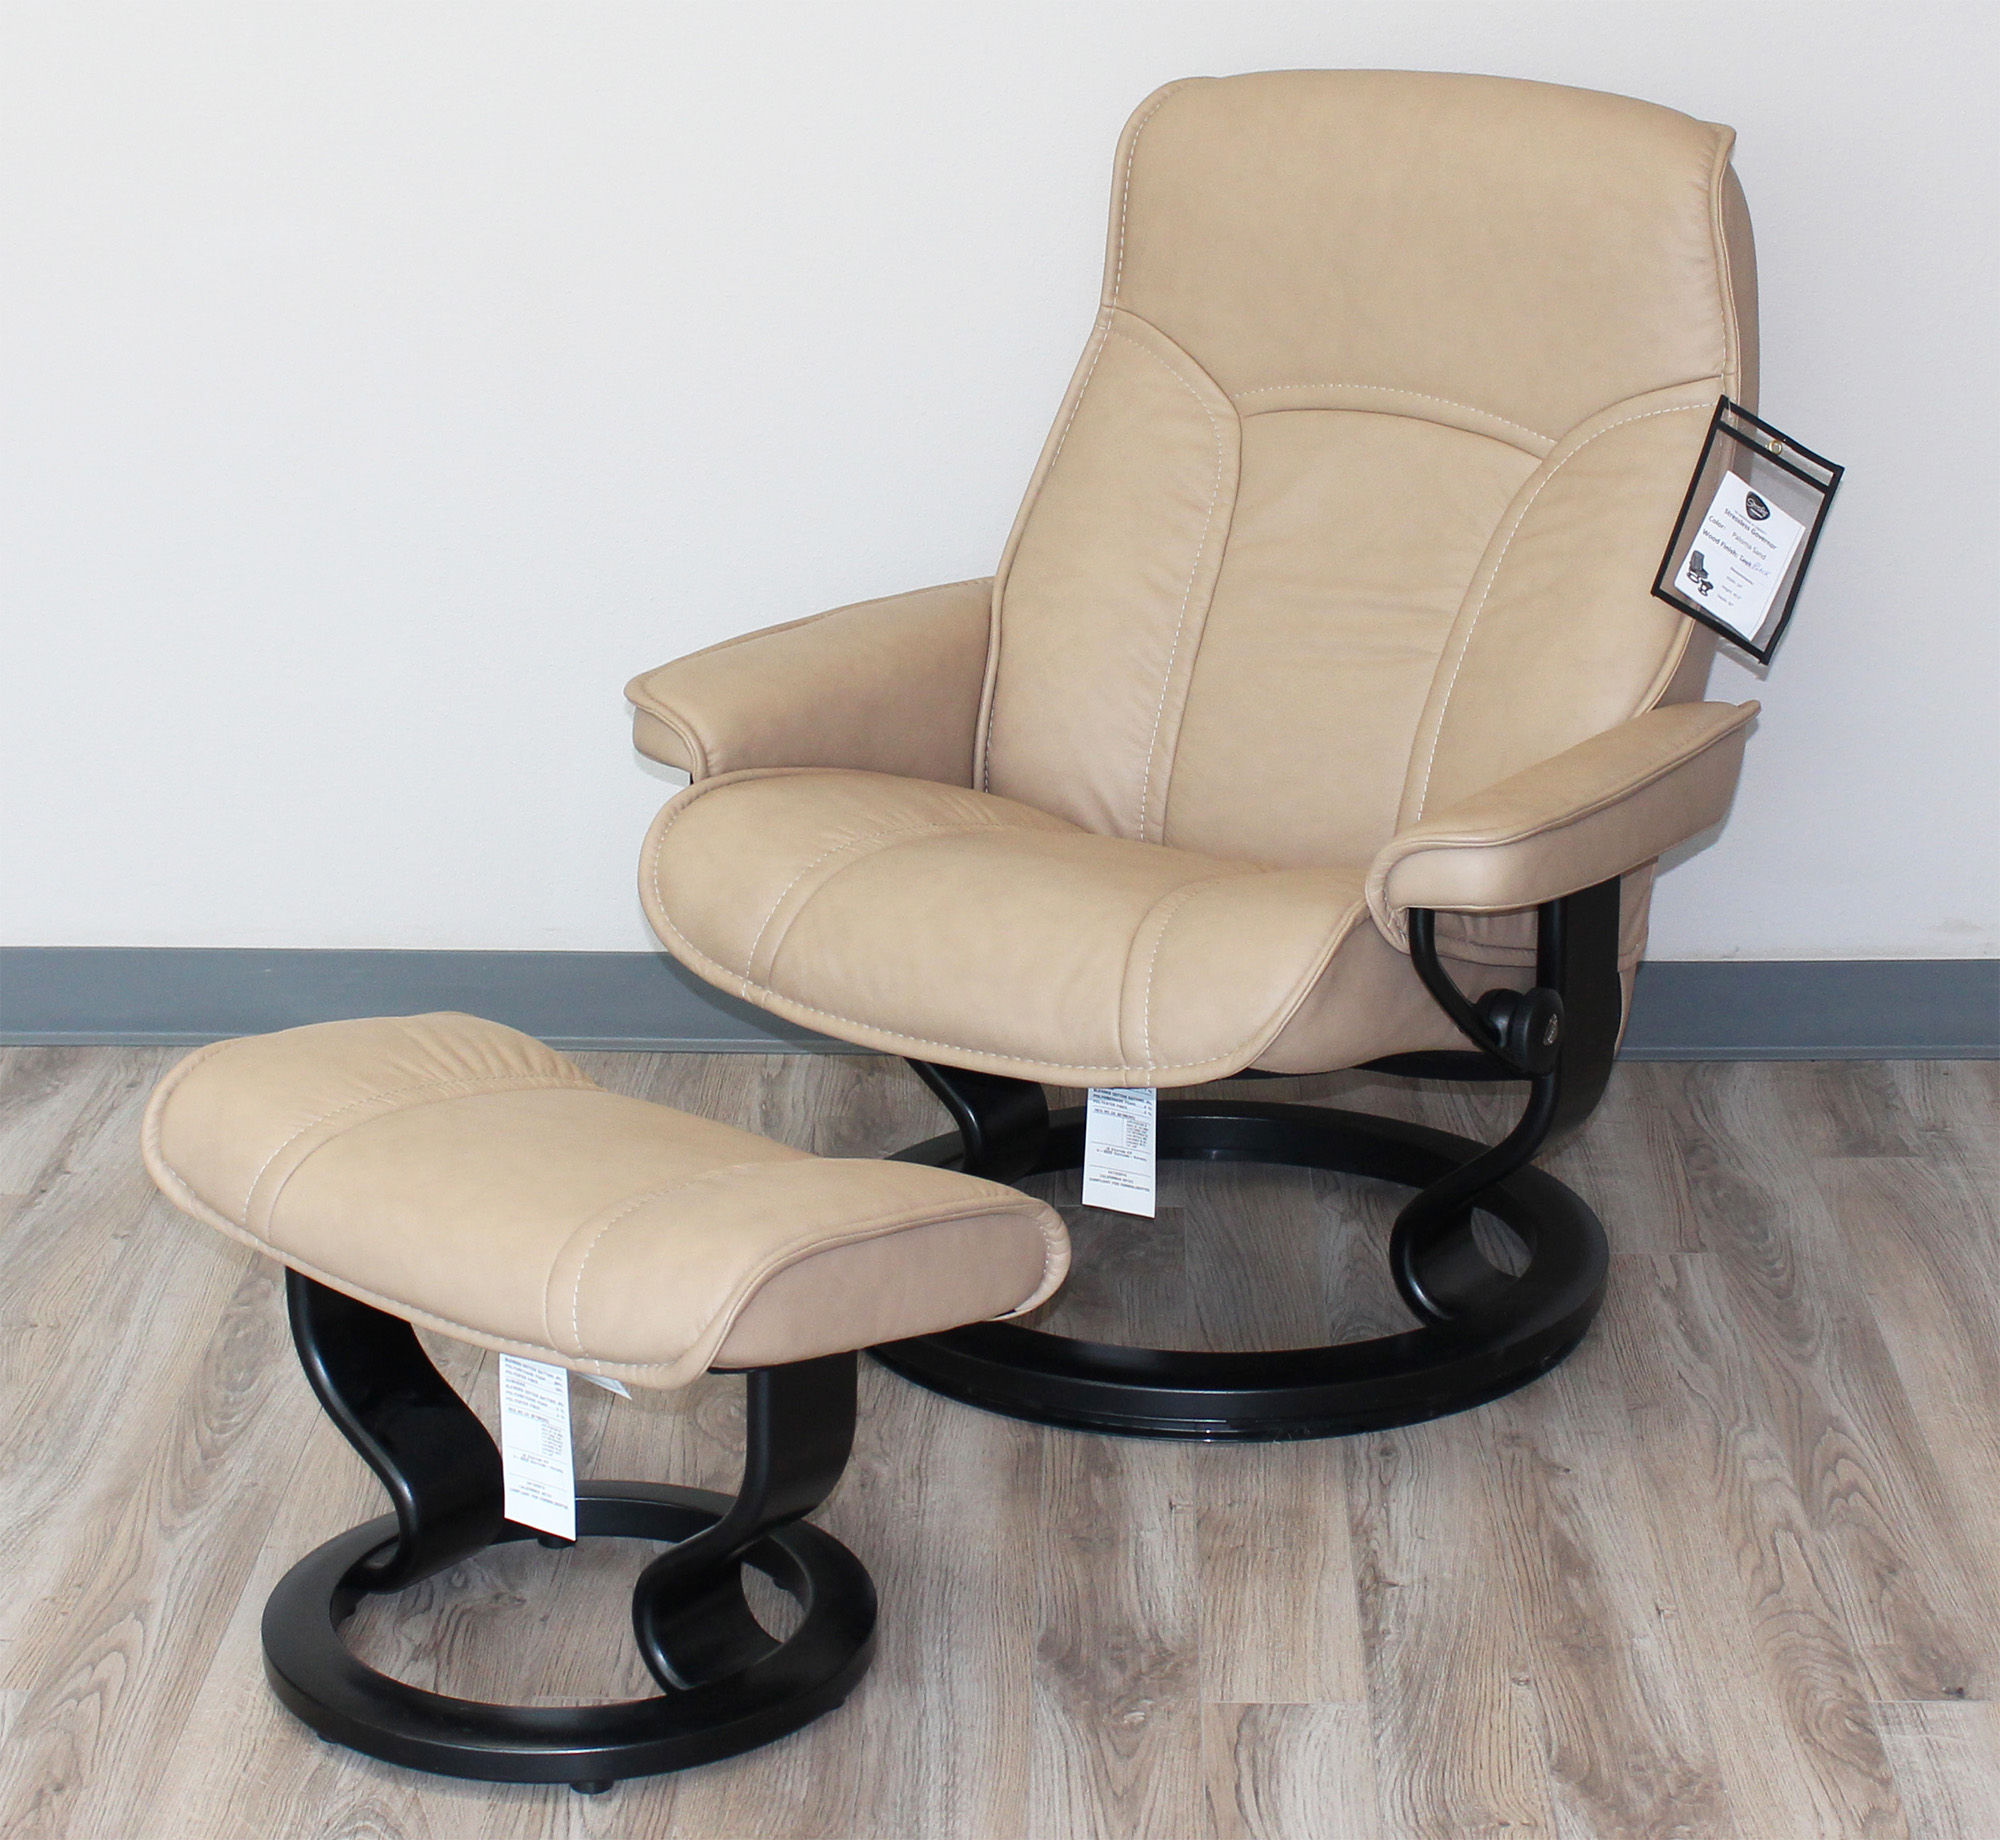 Sensational Stressless Governor Paloma Sand Leather Recliner Chair And Ottoman By Ekornes Gmtry Best Dining Table And Chair Ideas Images Gmtryco